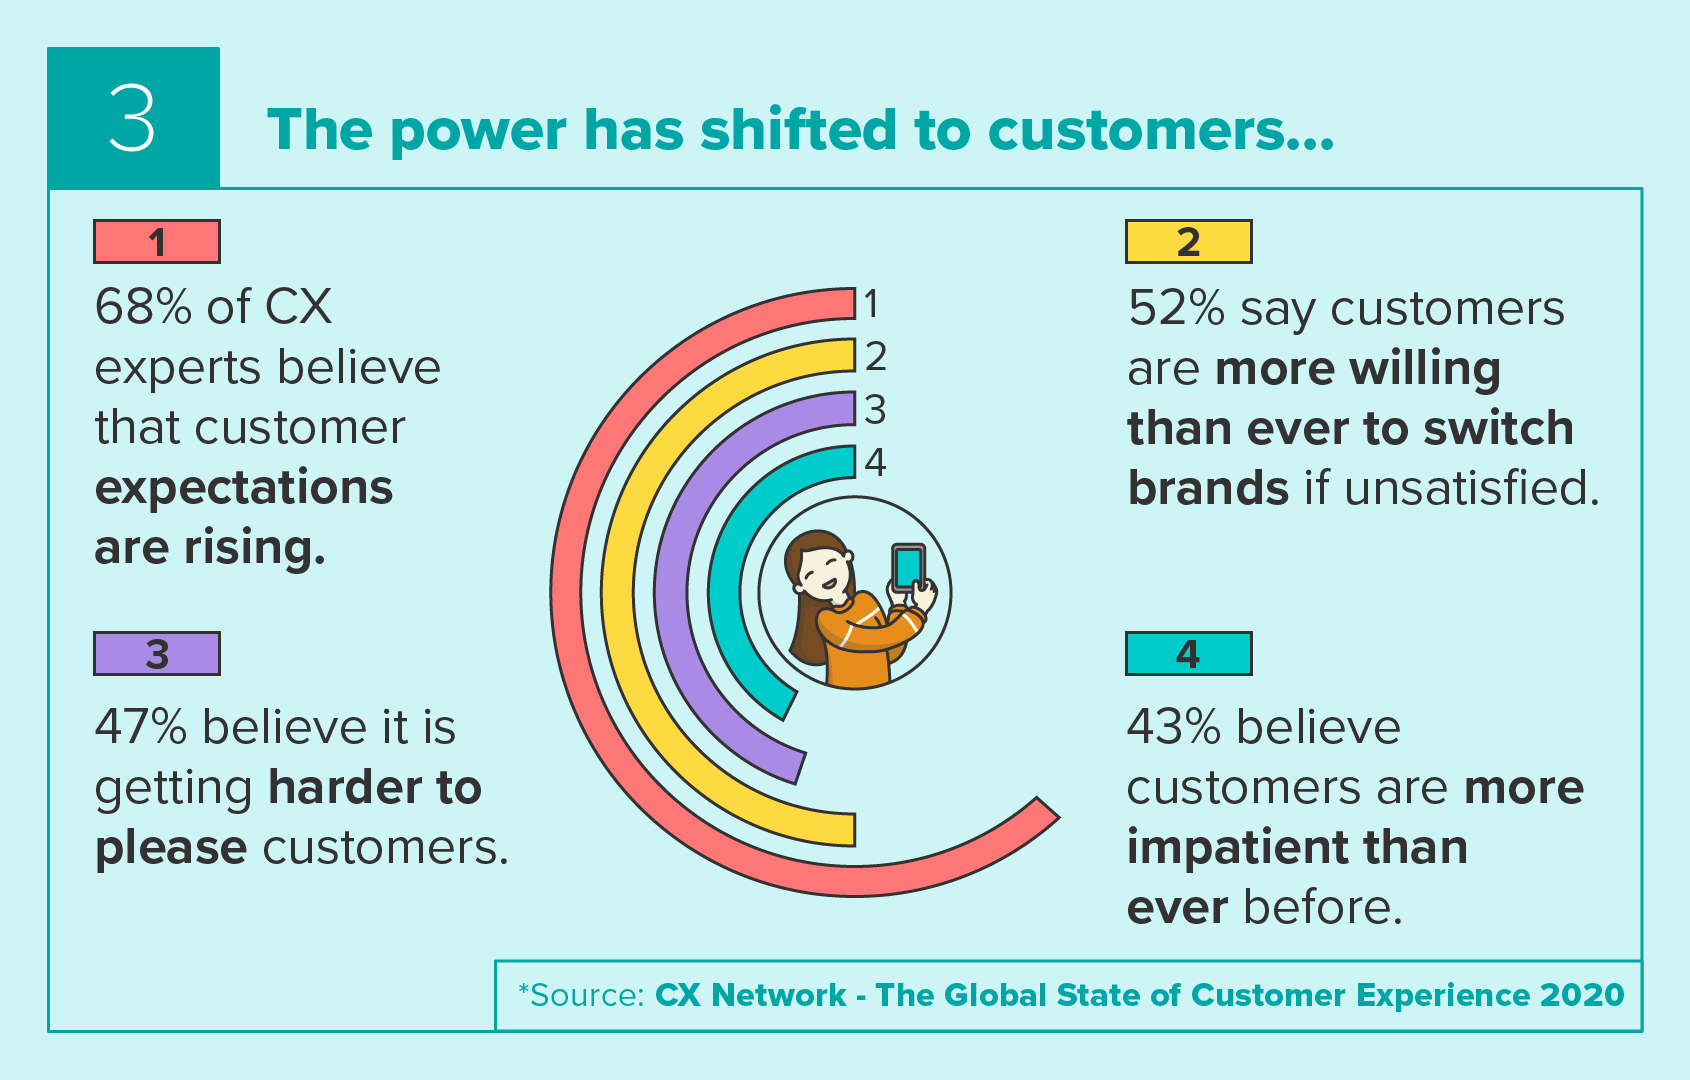 The power has shifted to customers